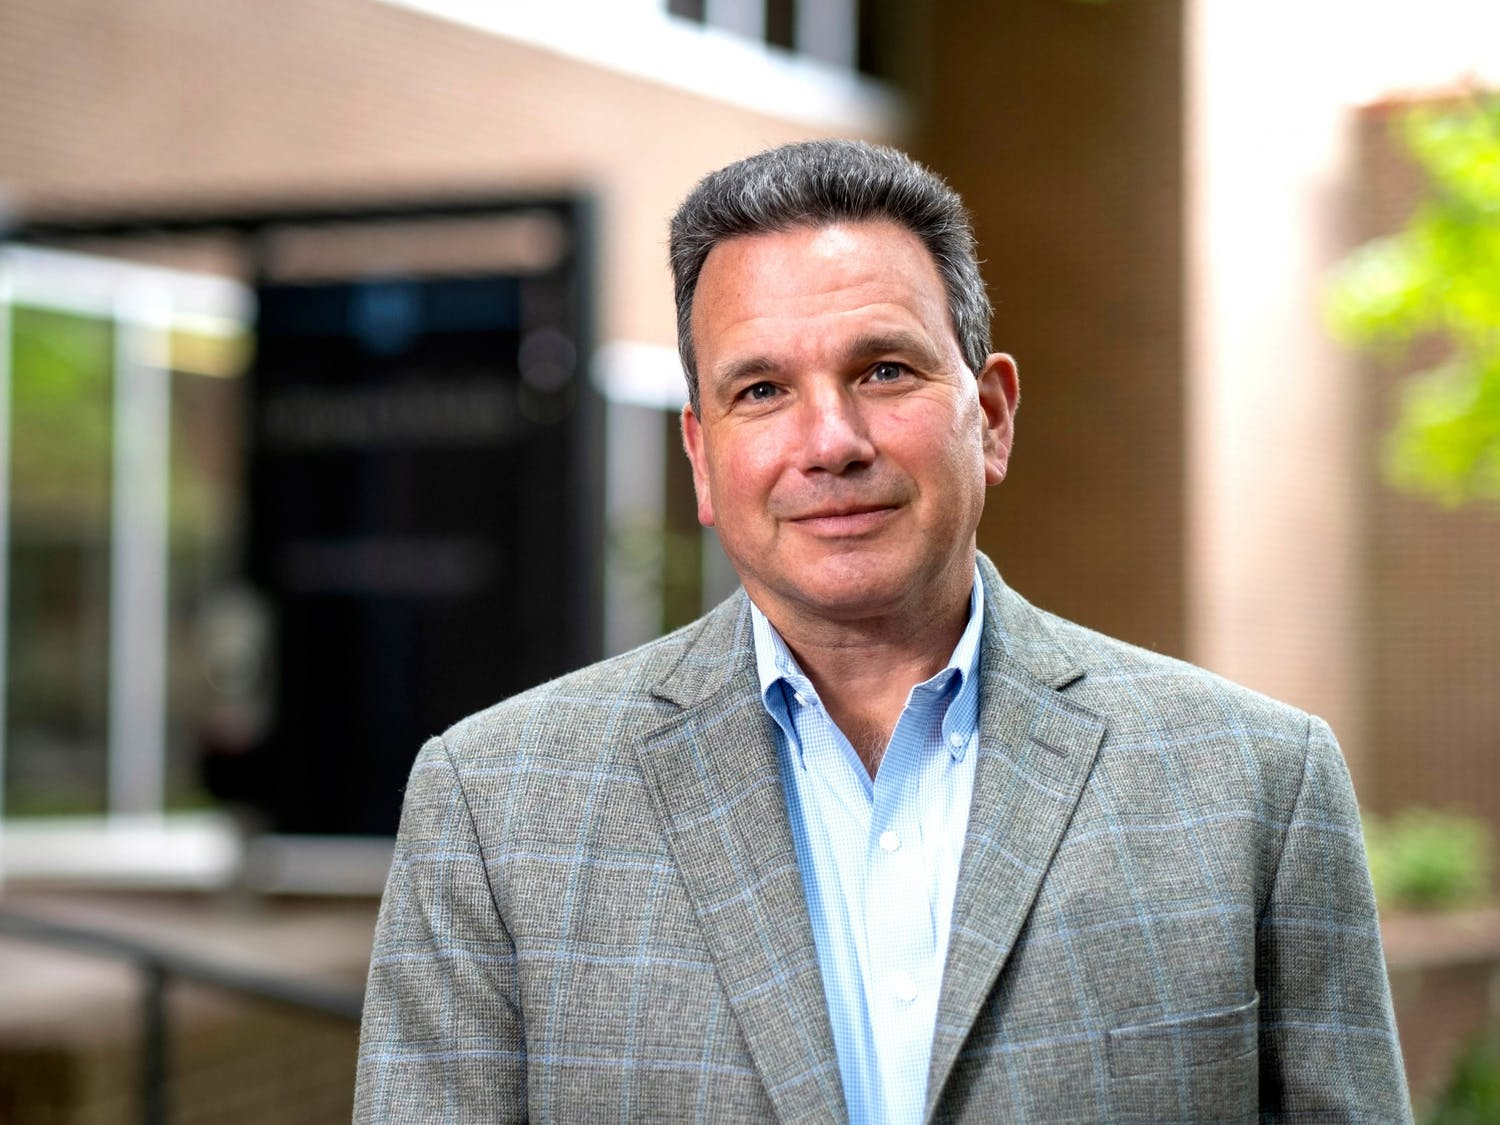 Dr. Mario Ciocca, UNC's director of sports medicine, was named a recipient of the C. Knox Massey Distinguished Service Awards, which recognizes outstanding UNC employees each year. Photo courtesy of Jon Gardiner/UNC-Chapel Hill.